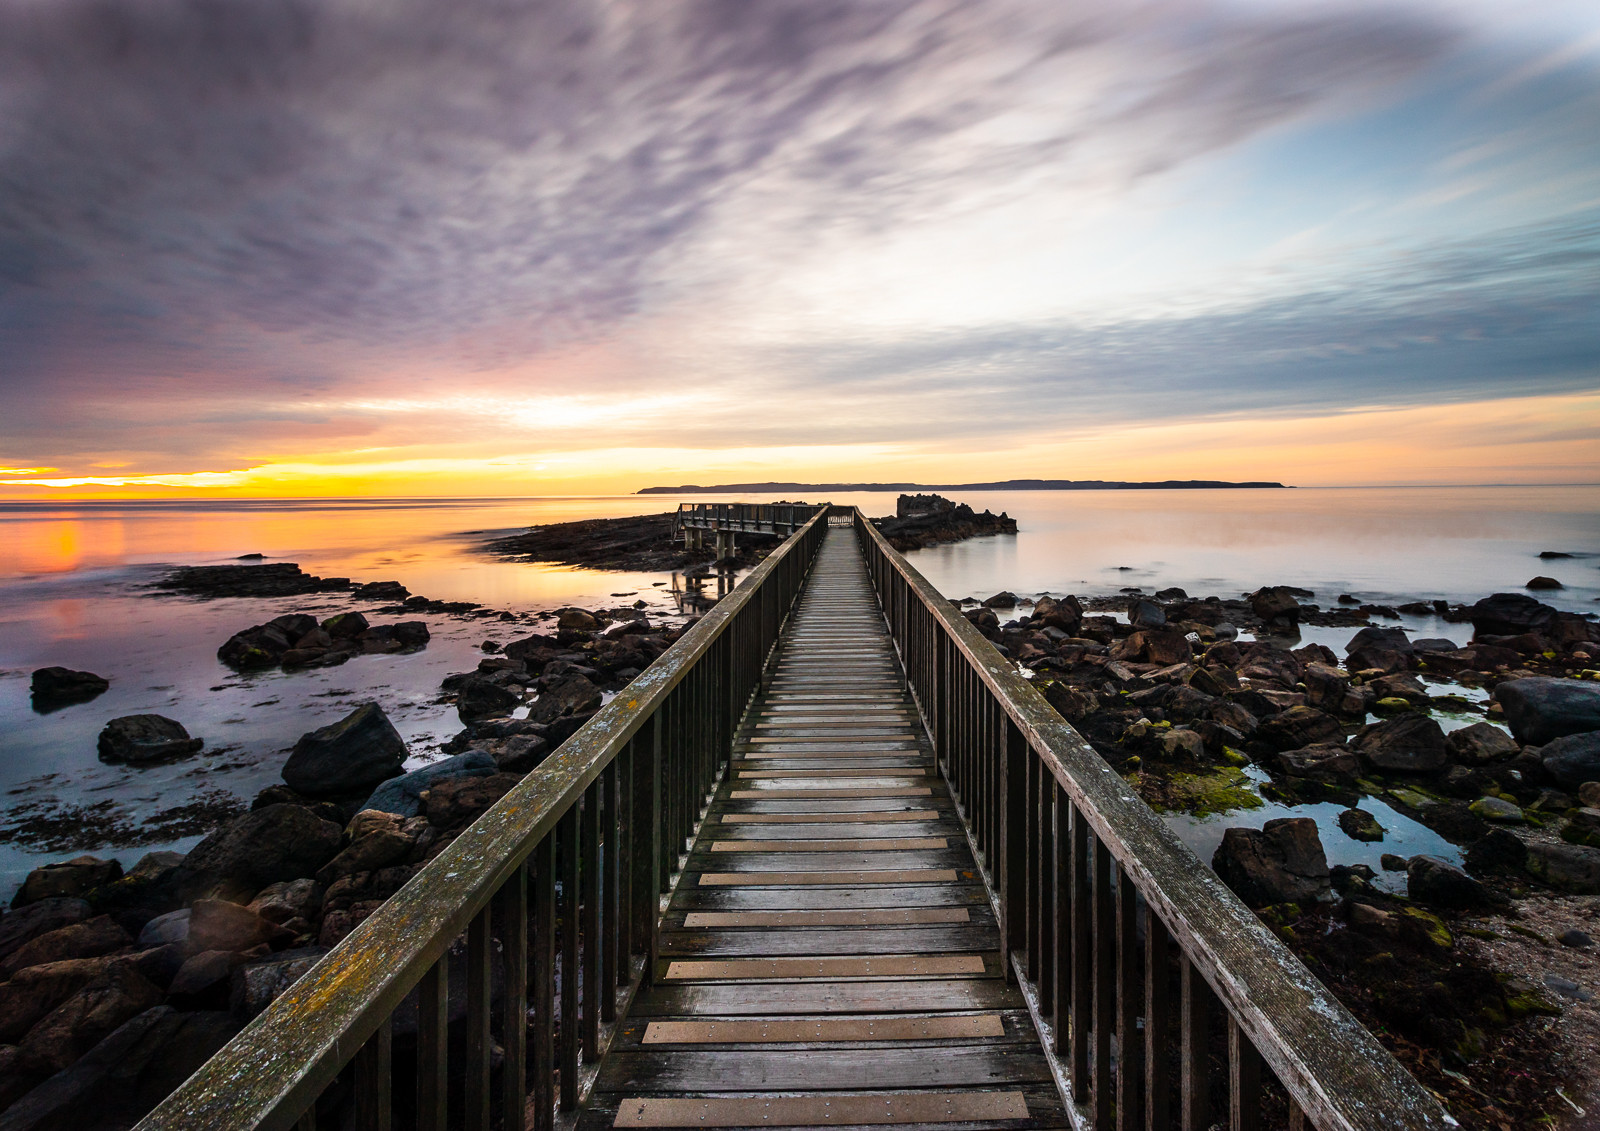 COLOUR - Pan's Rock by Stephen McComb (9 marks)